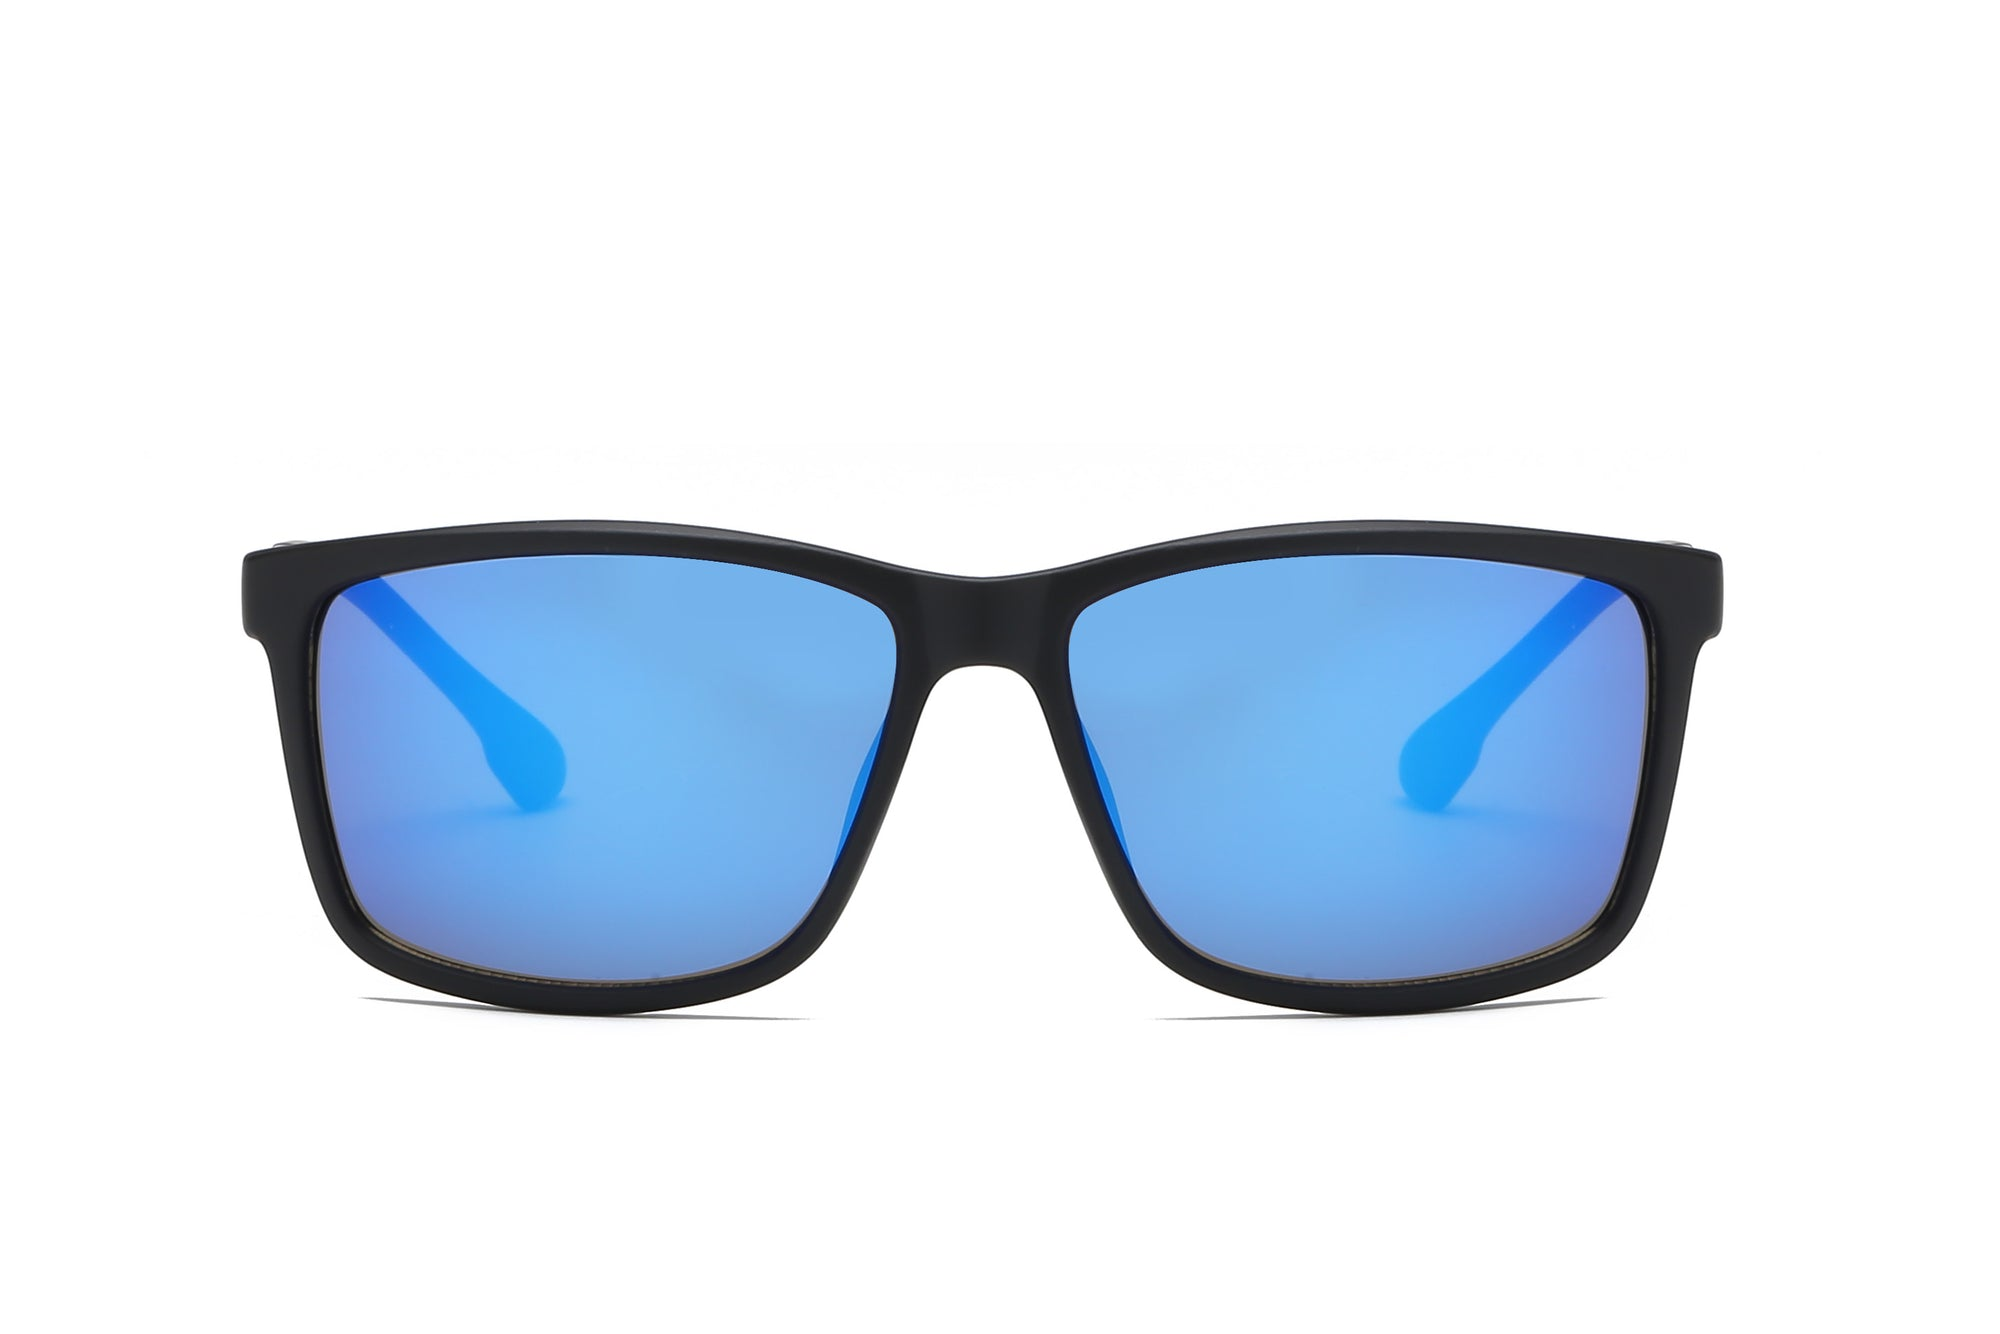 S1022 -  Men Sports Square Sunglasses - Iris Fashion Inc. | Wholesale Sunglasses and Glasses